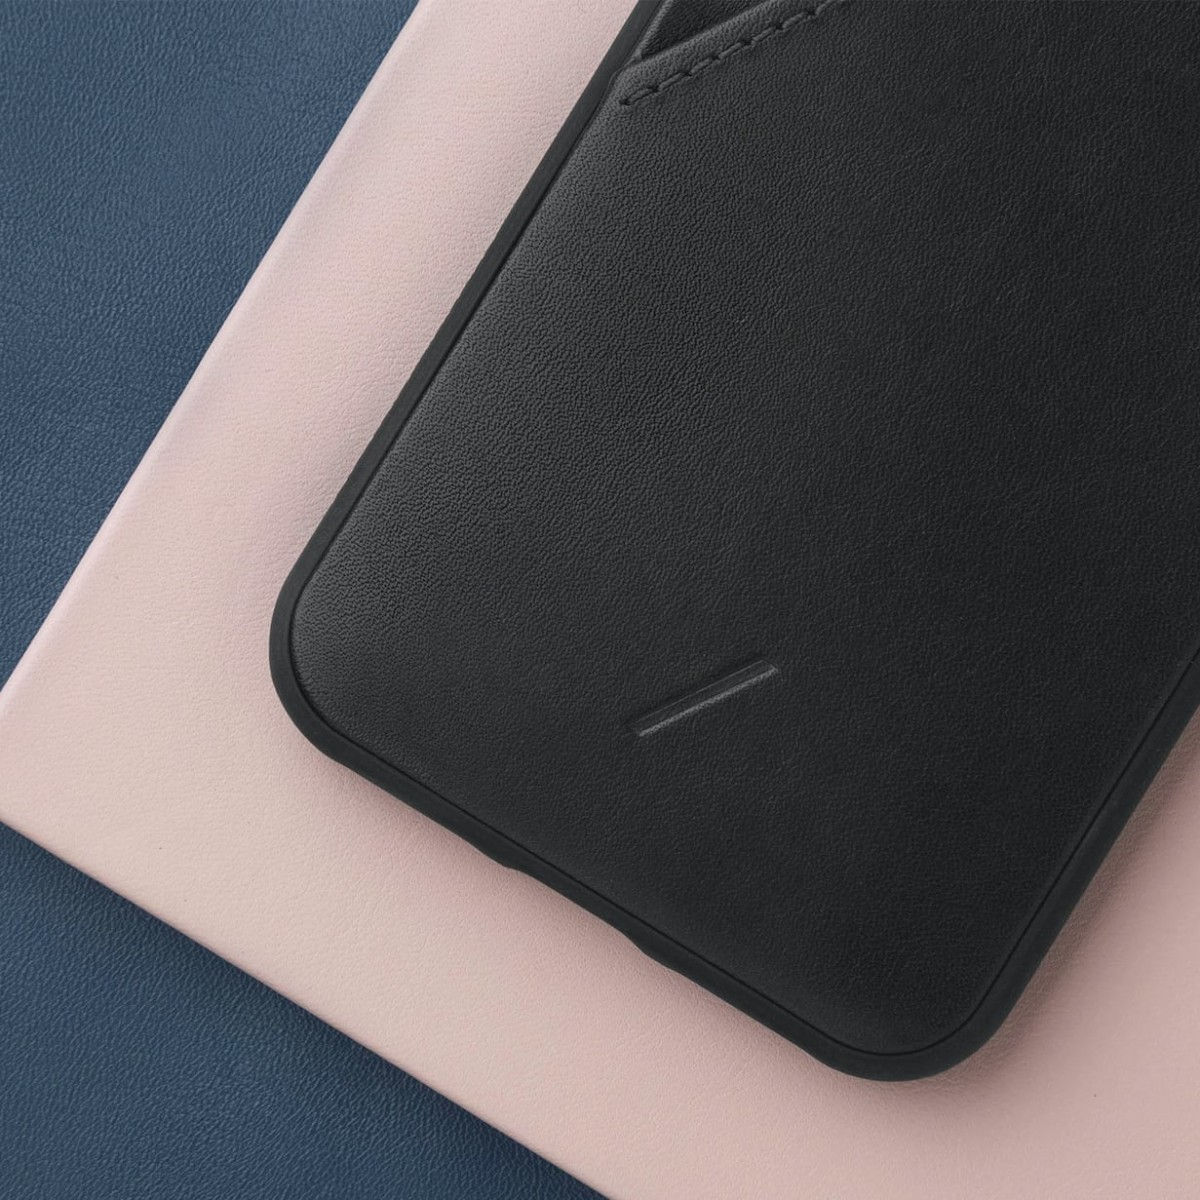 Native Union Clic Card Holder Case keeps your belongings together and your life simple